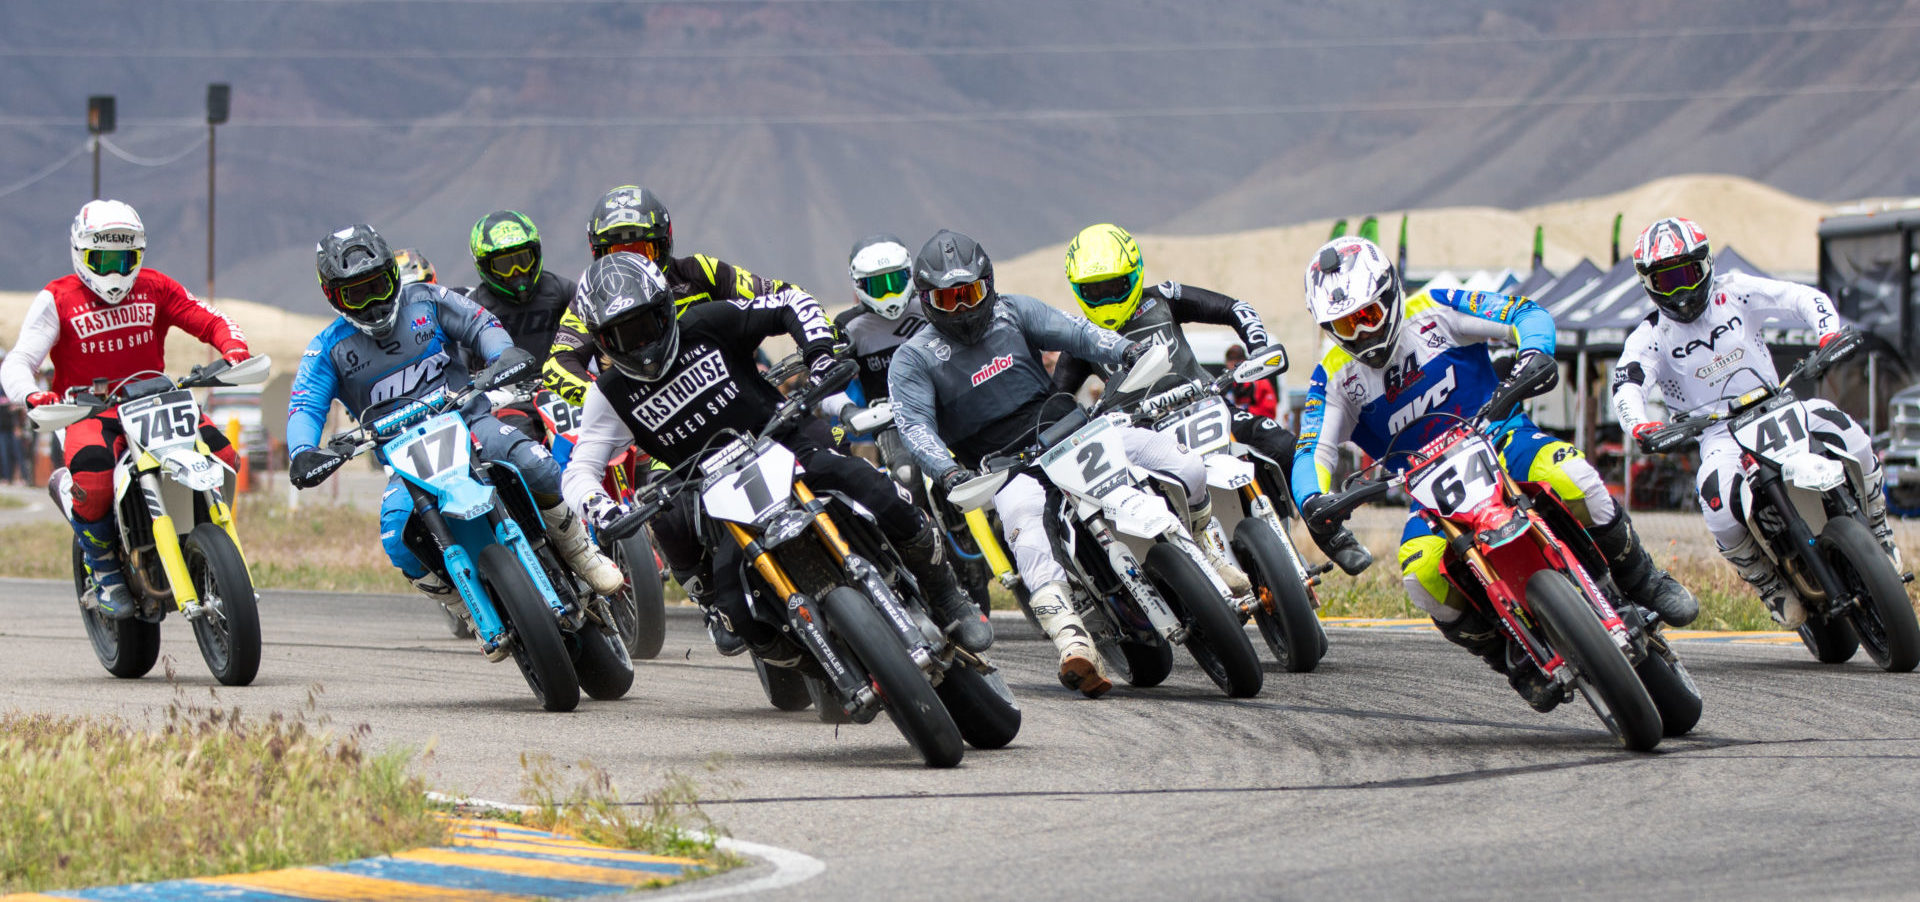 AMA Supermoto action. Photo by Steve Alkyer, courtesy of DRT Racing.